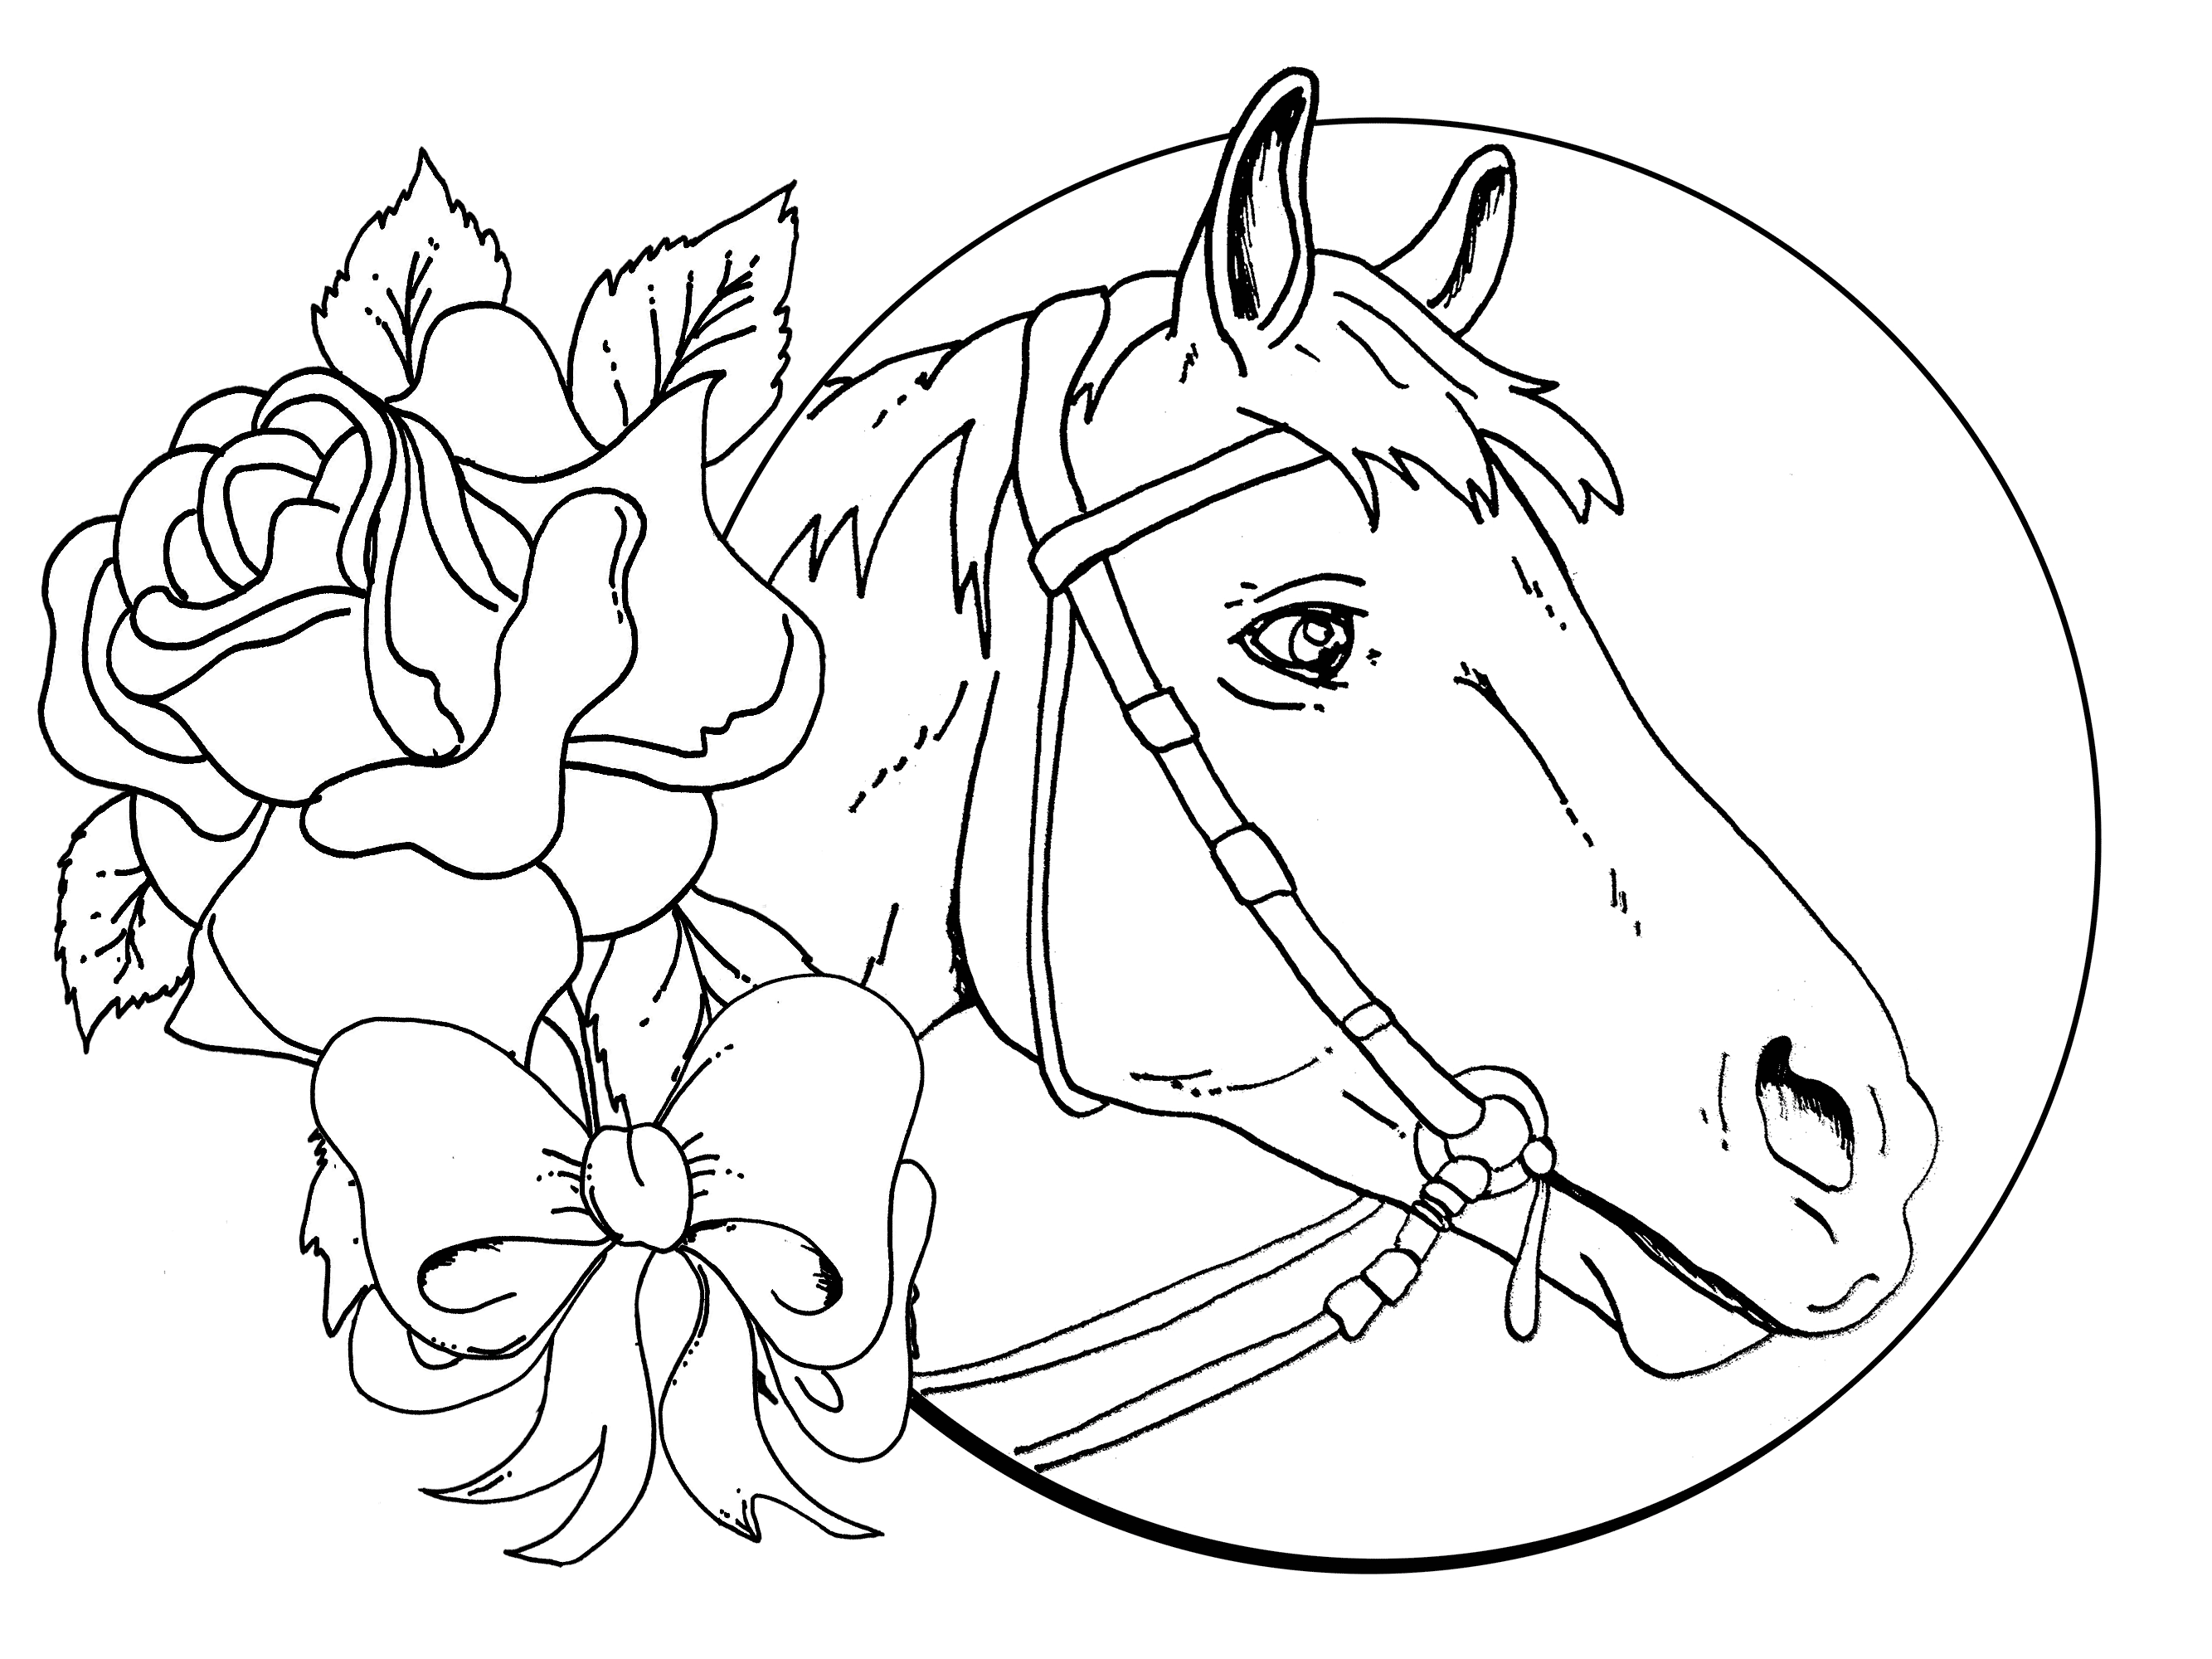 printable horse colouring pages fun horse coloring pages for your kids printable colouring pages printable horse